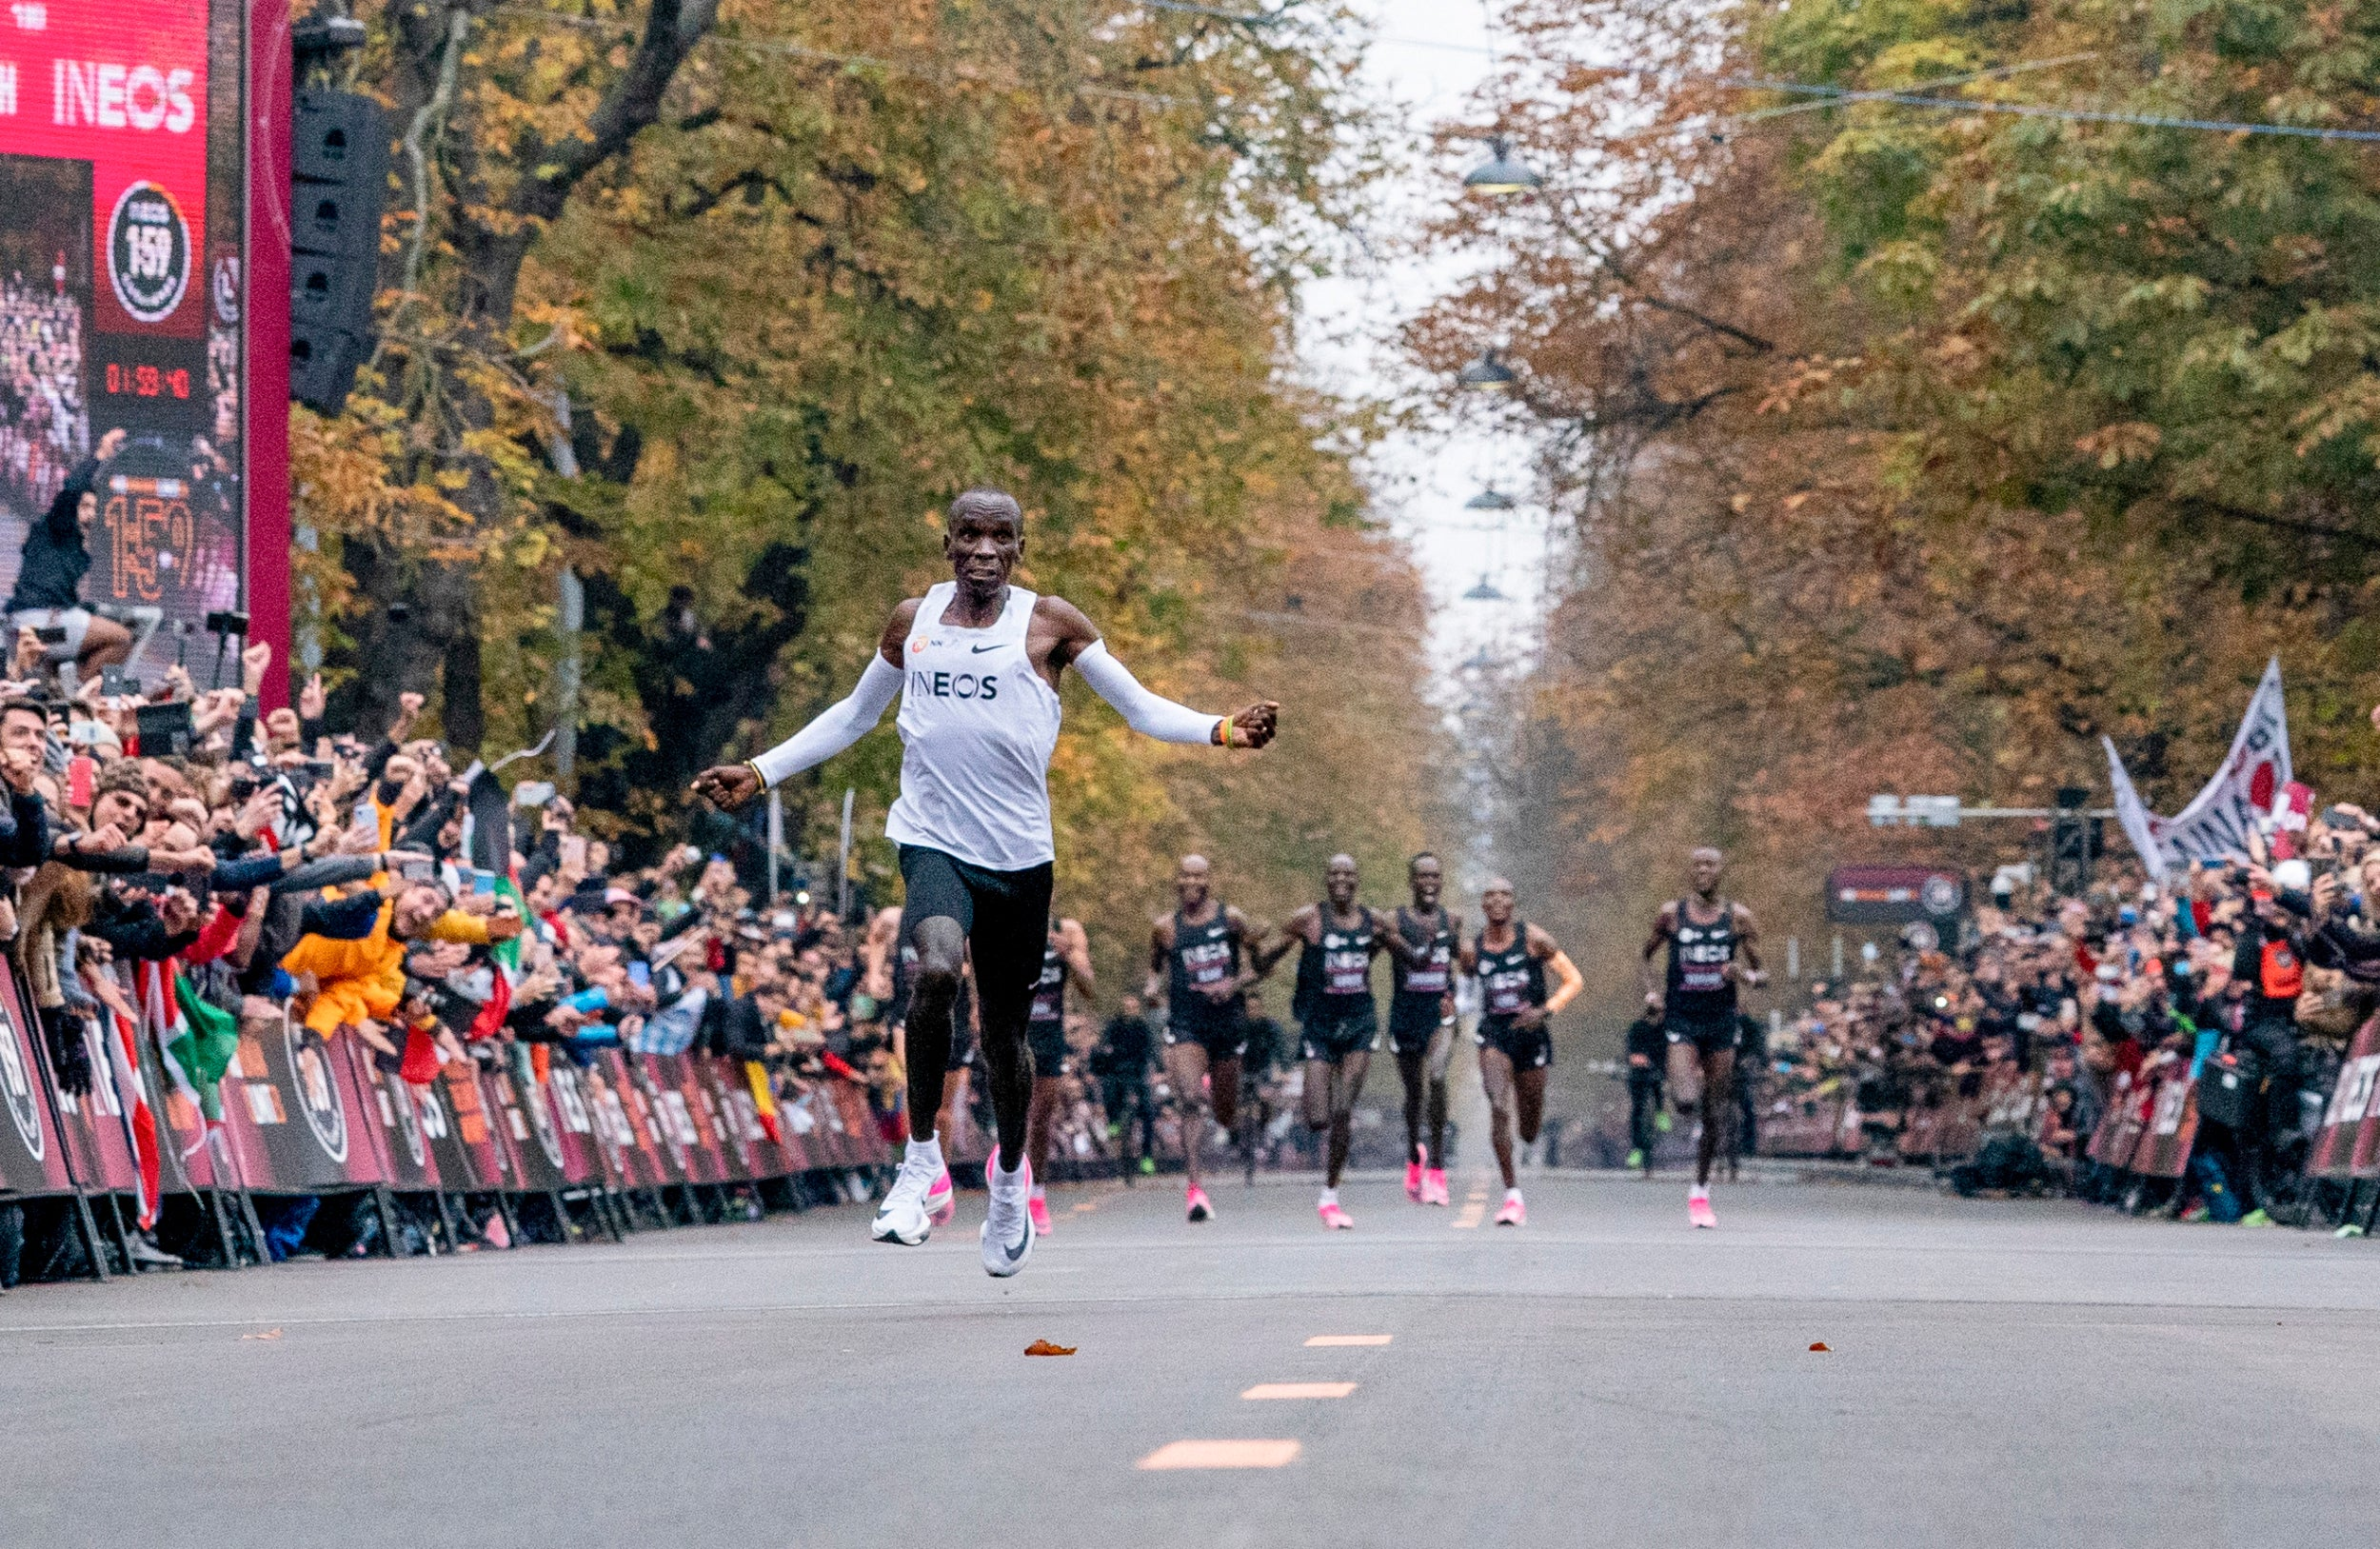 Nike ZoomX Vaporfly: What are the shoes Eliud Kipchoge wore in Ineos 1.59 marathon and why are they controversial?